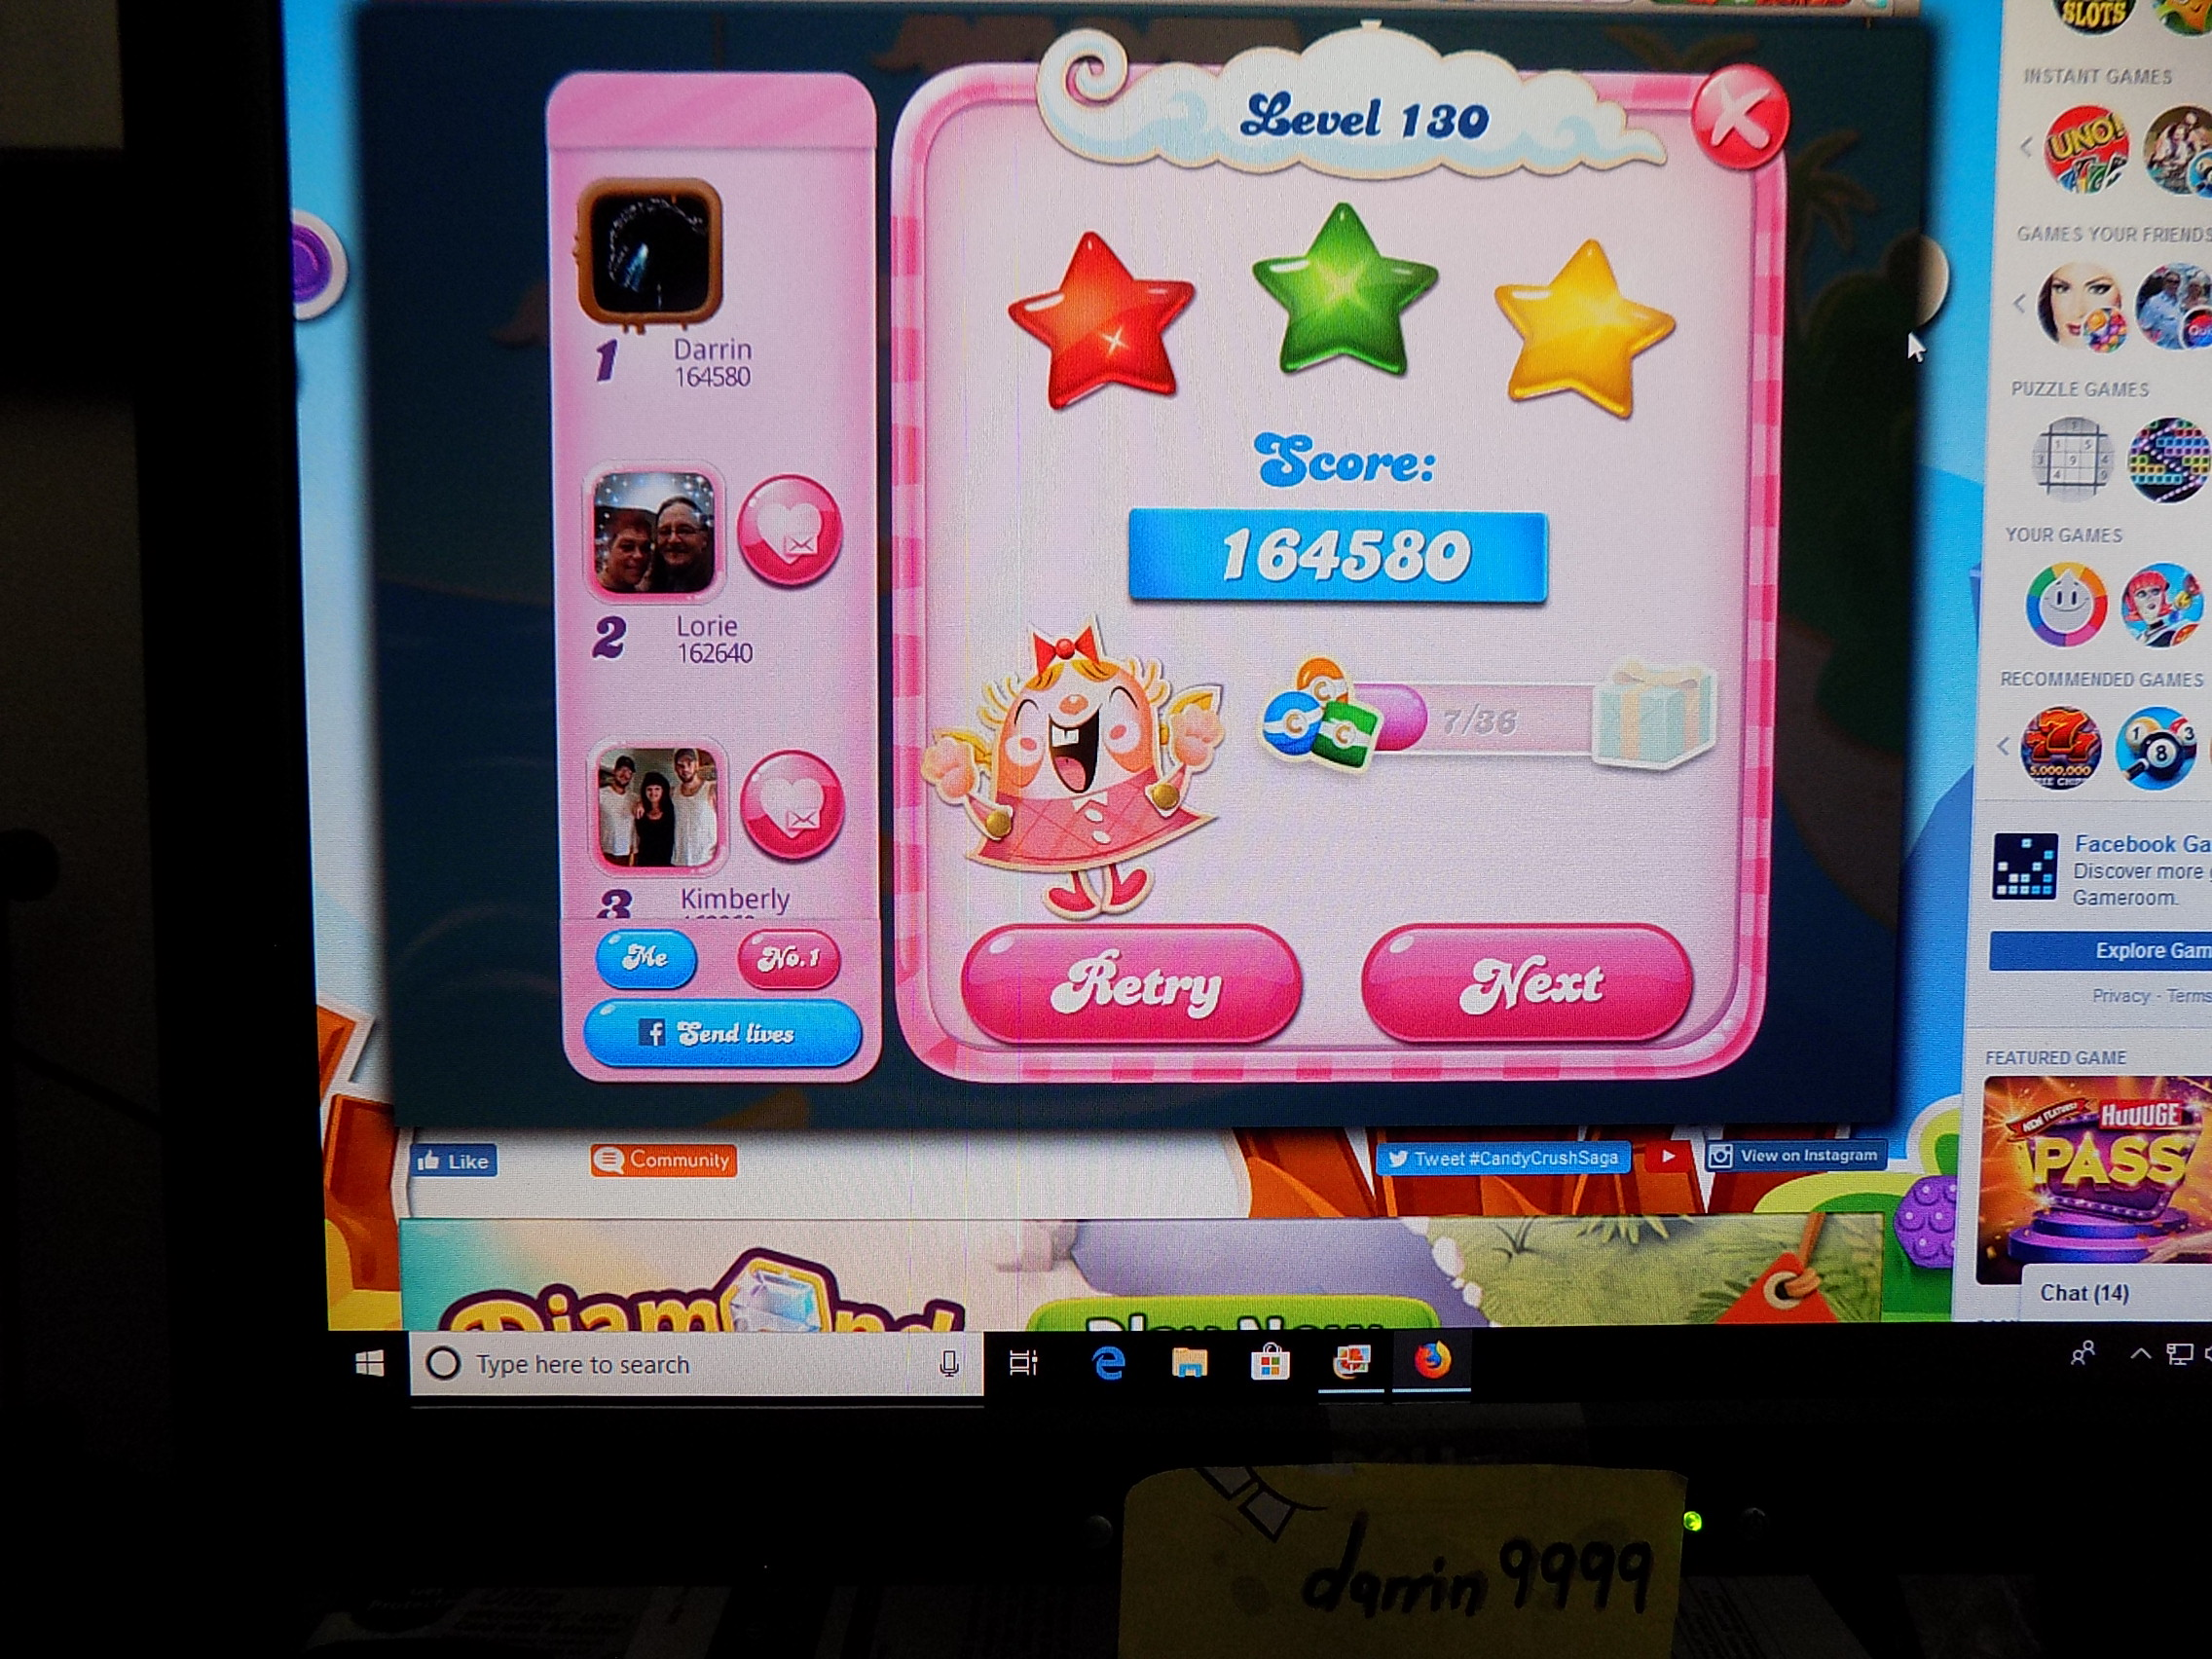 darrin9999: Candy Crush Saga: Level 130 (Web) 164,580 points on 2019-08-12 06:54:49